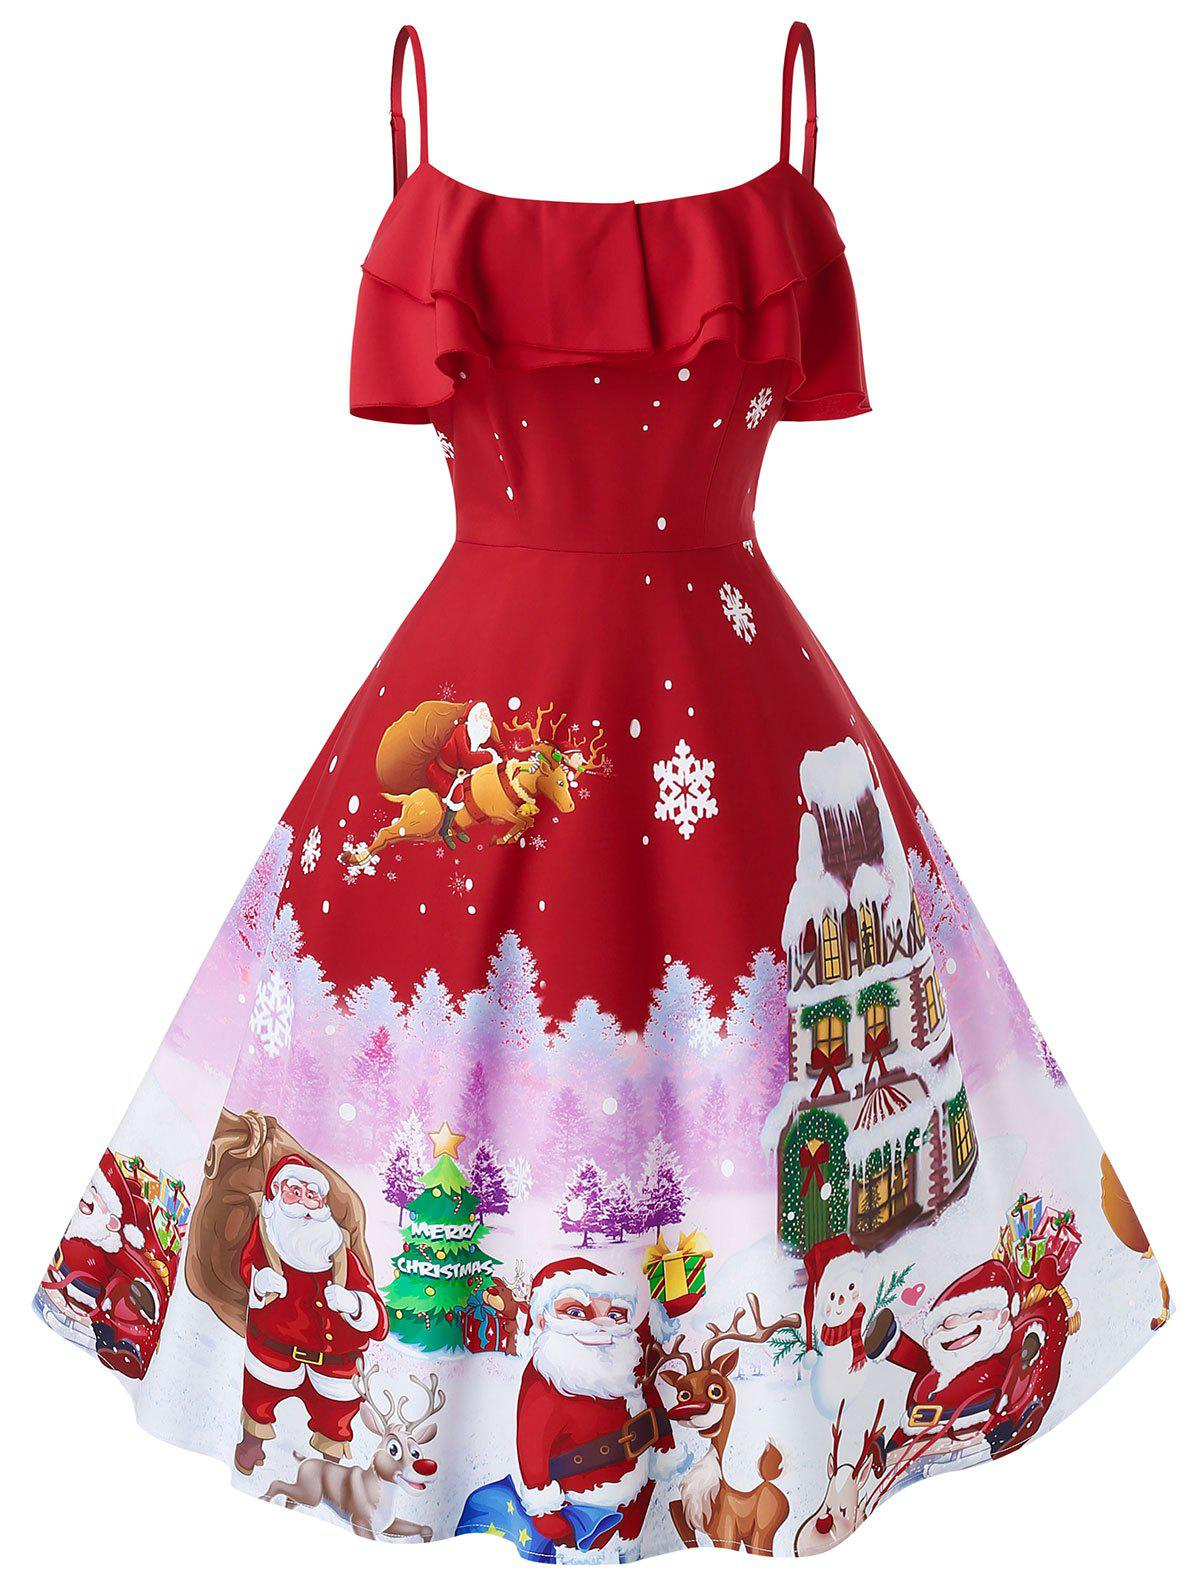 Plus Size Christmas Vintage Printed Party Dress Rosegal